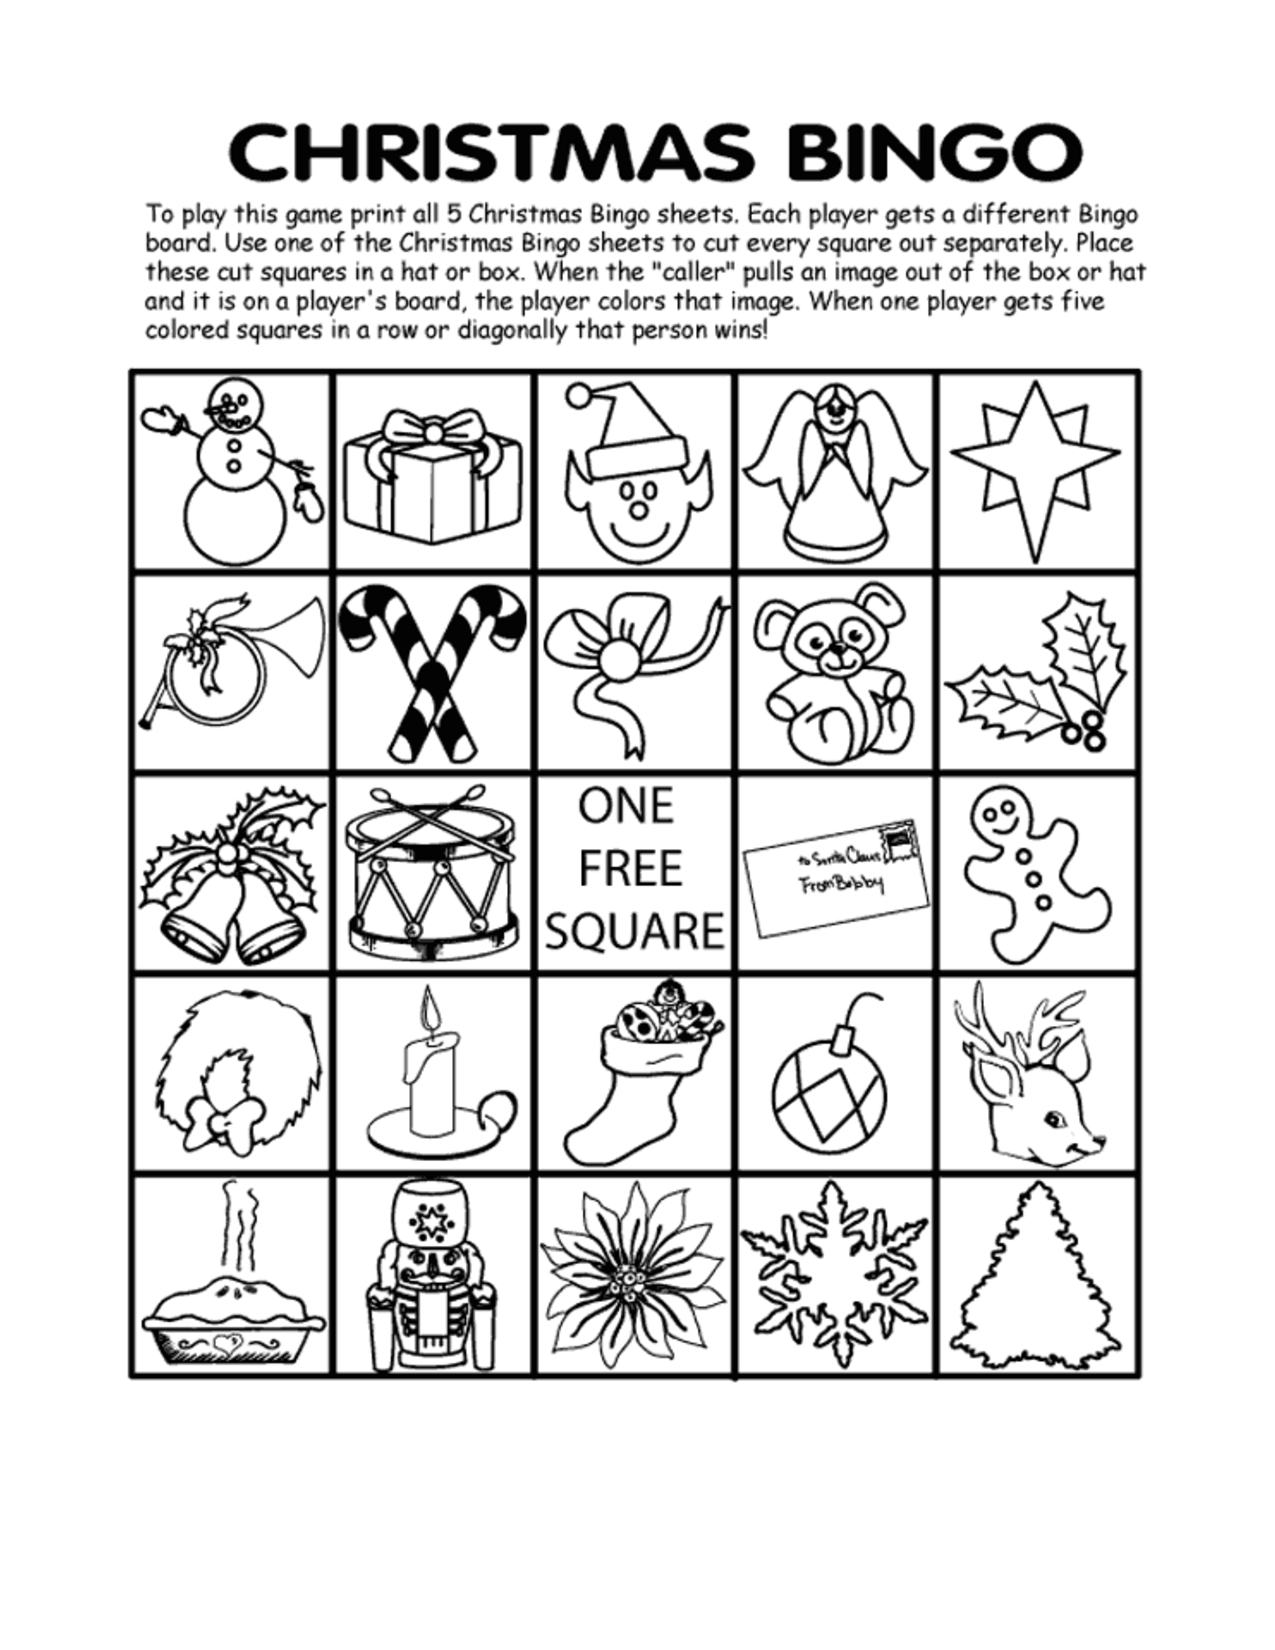 Free Christmas Bingo Sheets Printable | Printable Teacher